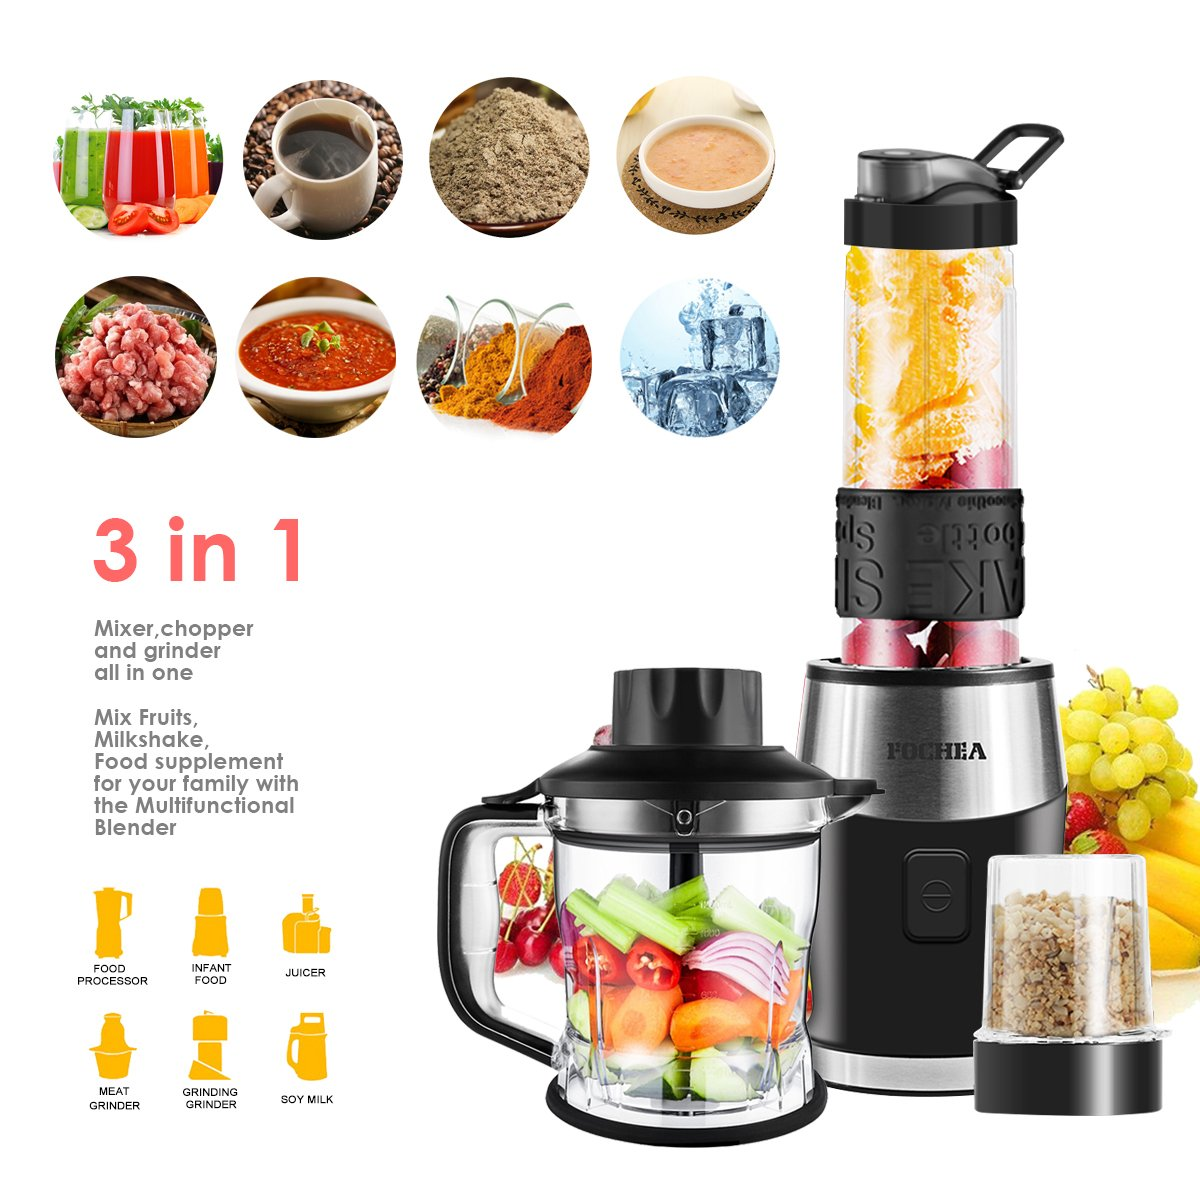 Smoothie Blender, Fochea 3 In 1 Food Processor Multi-Function Kitchen Mixer System, 700W High Speed Blender Chopper Grinder with 570ml BPA-Free bottle, Easy to Clean